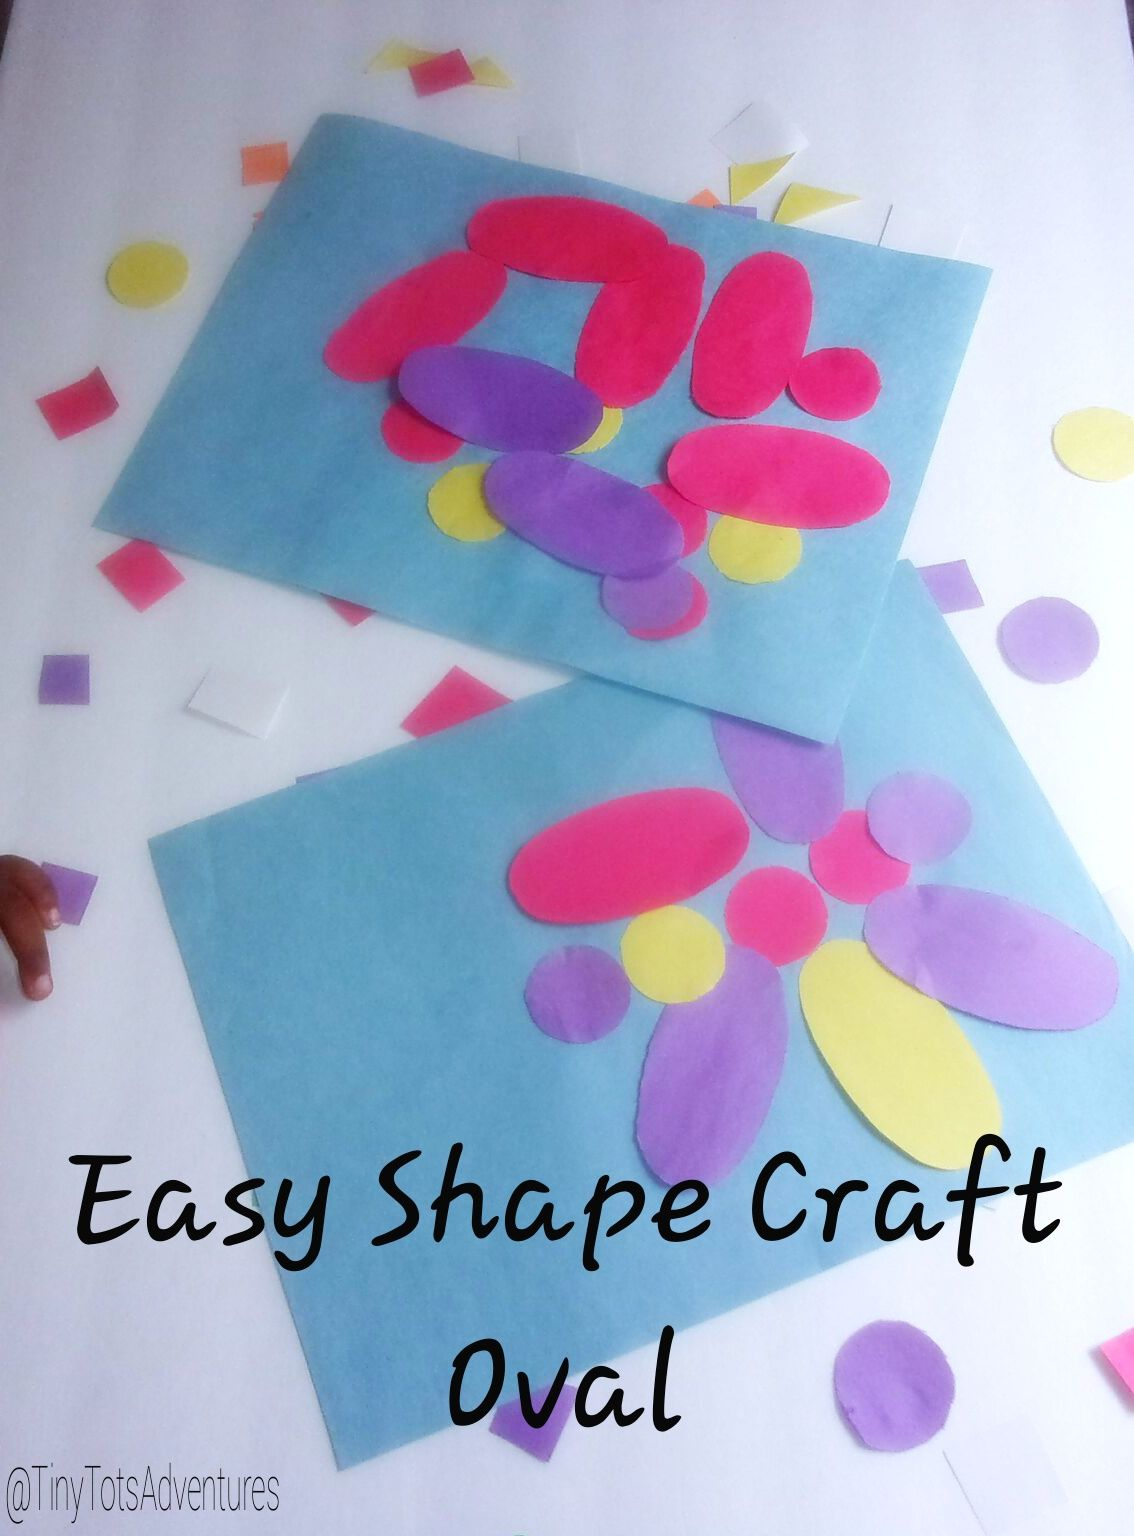 Easy Shap Craft Oval Make A Pretty Picture With The Shape Oval Great For Toddlers Learning